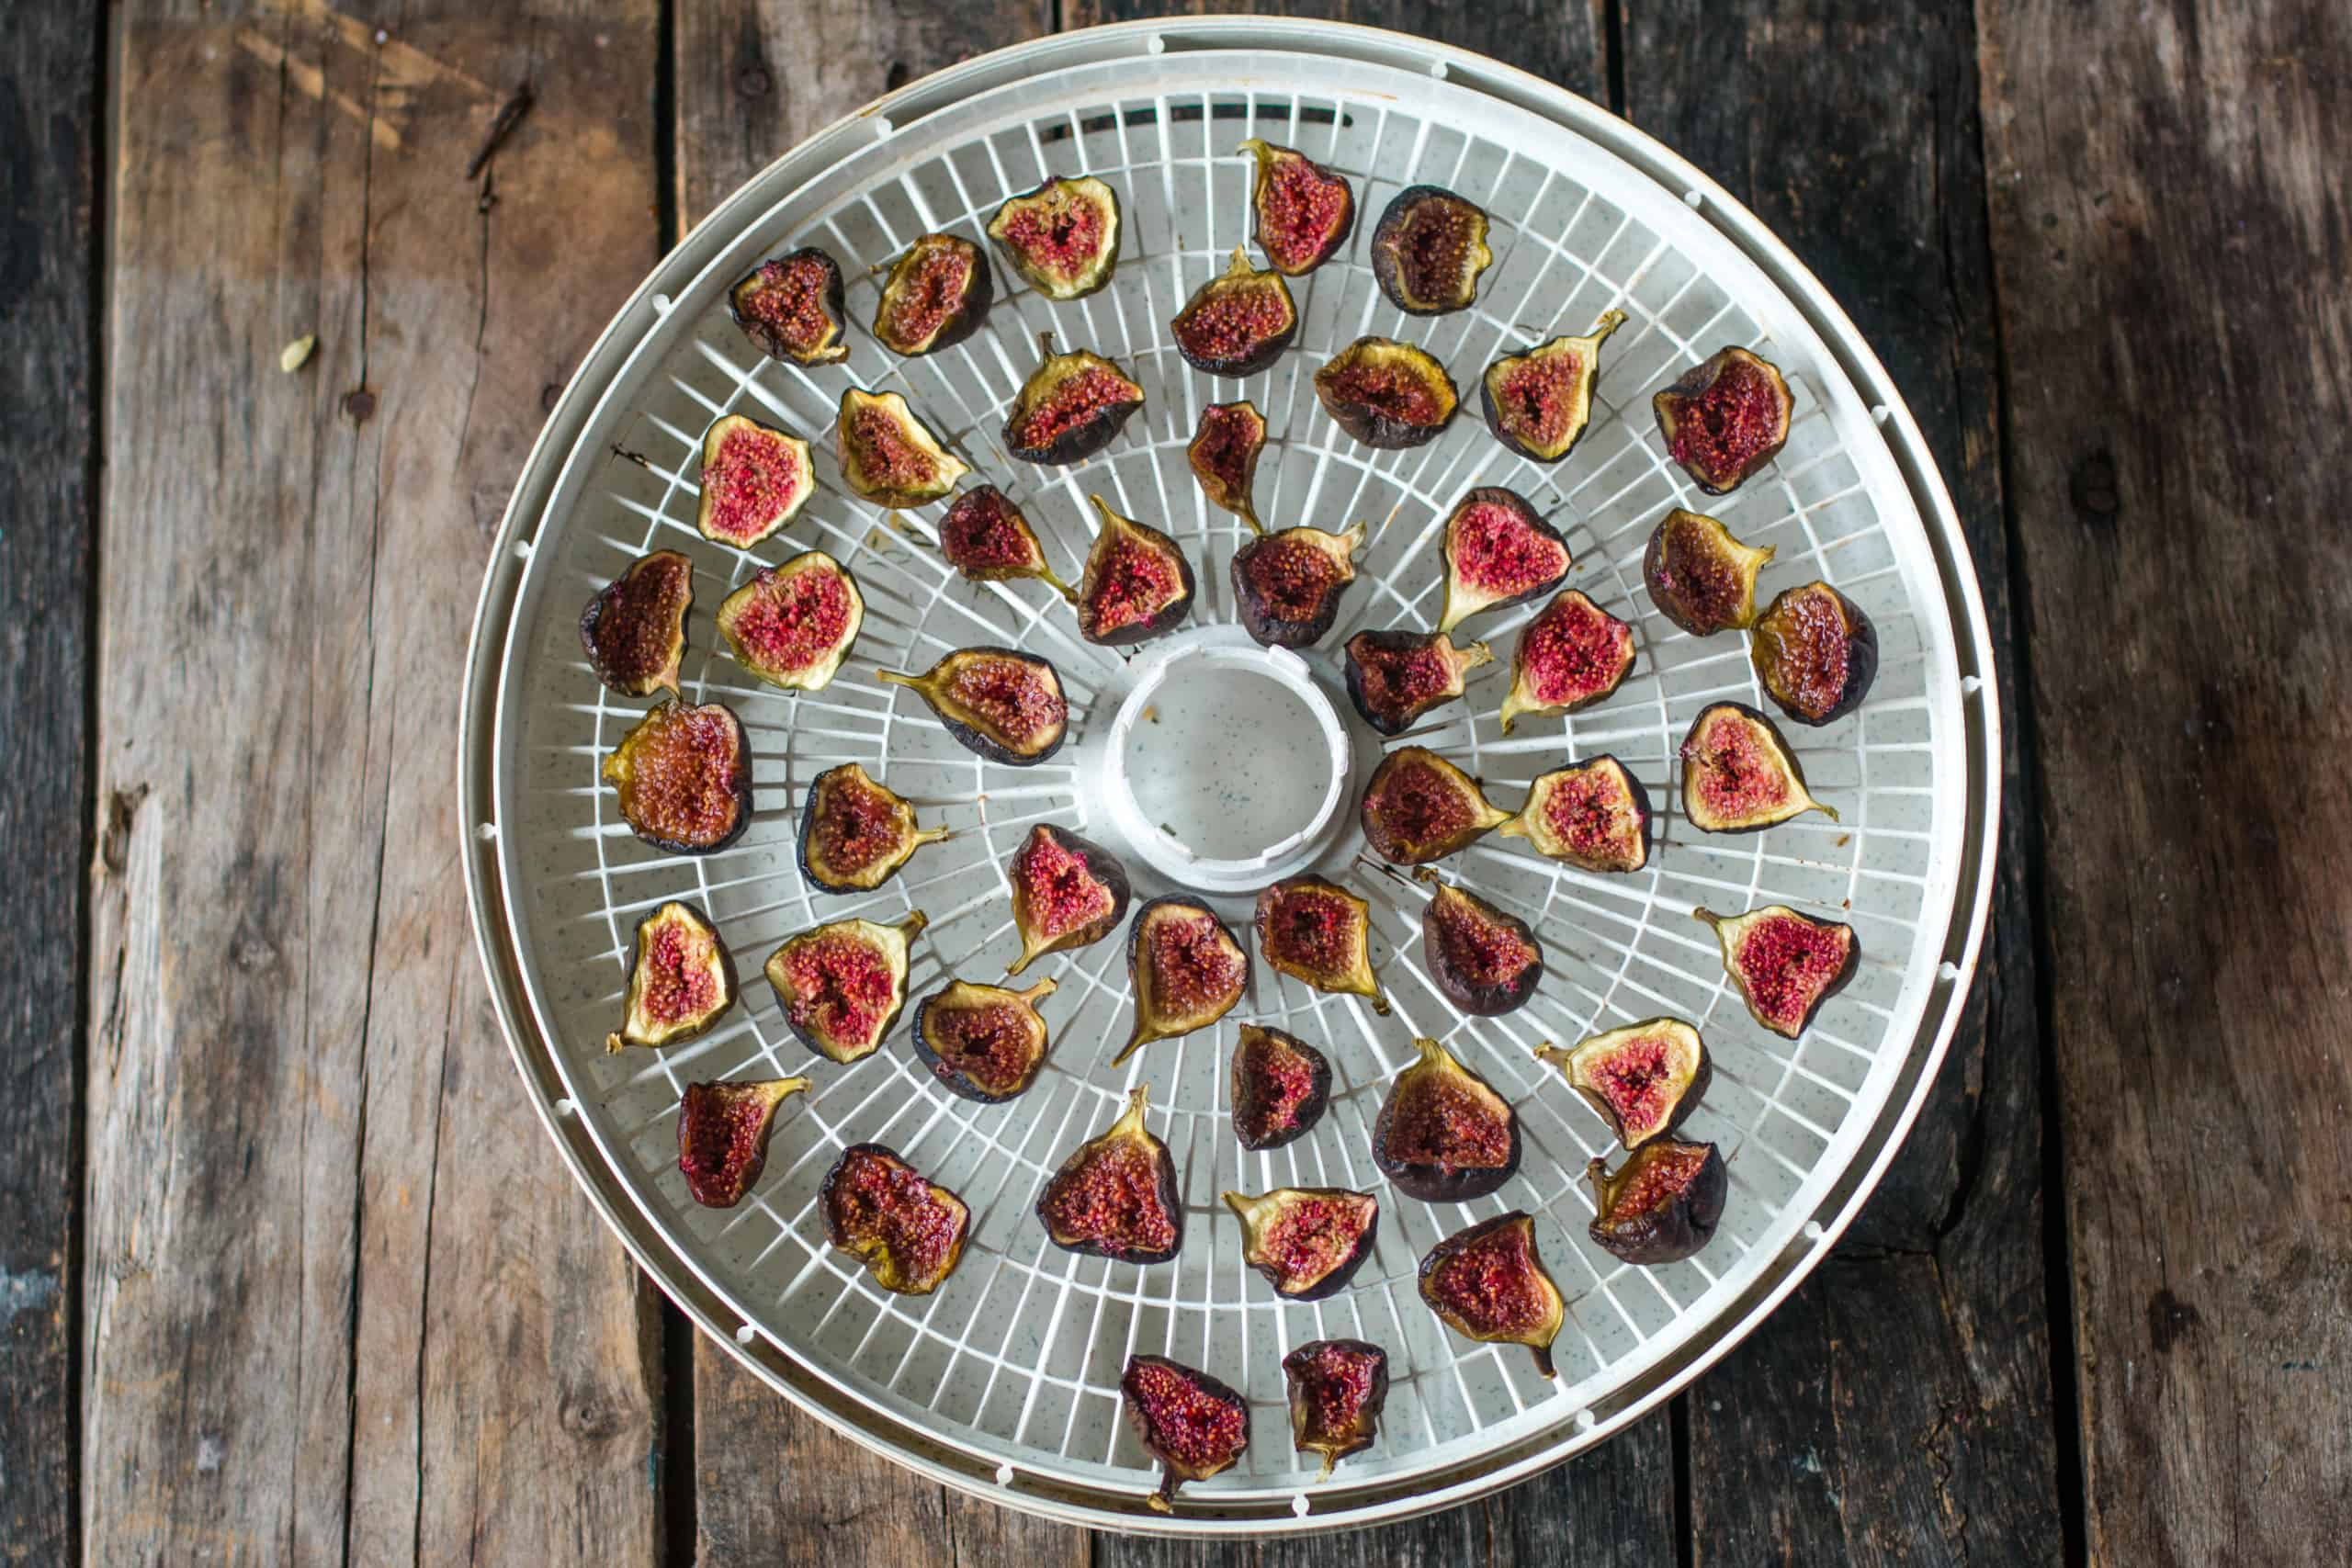 figs after being dehydrated on a shite circular dehydrating rack